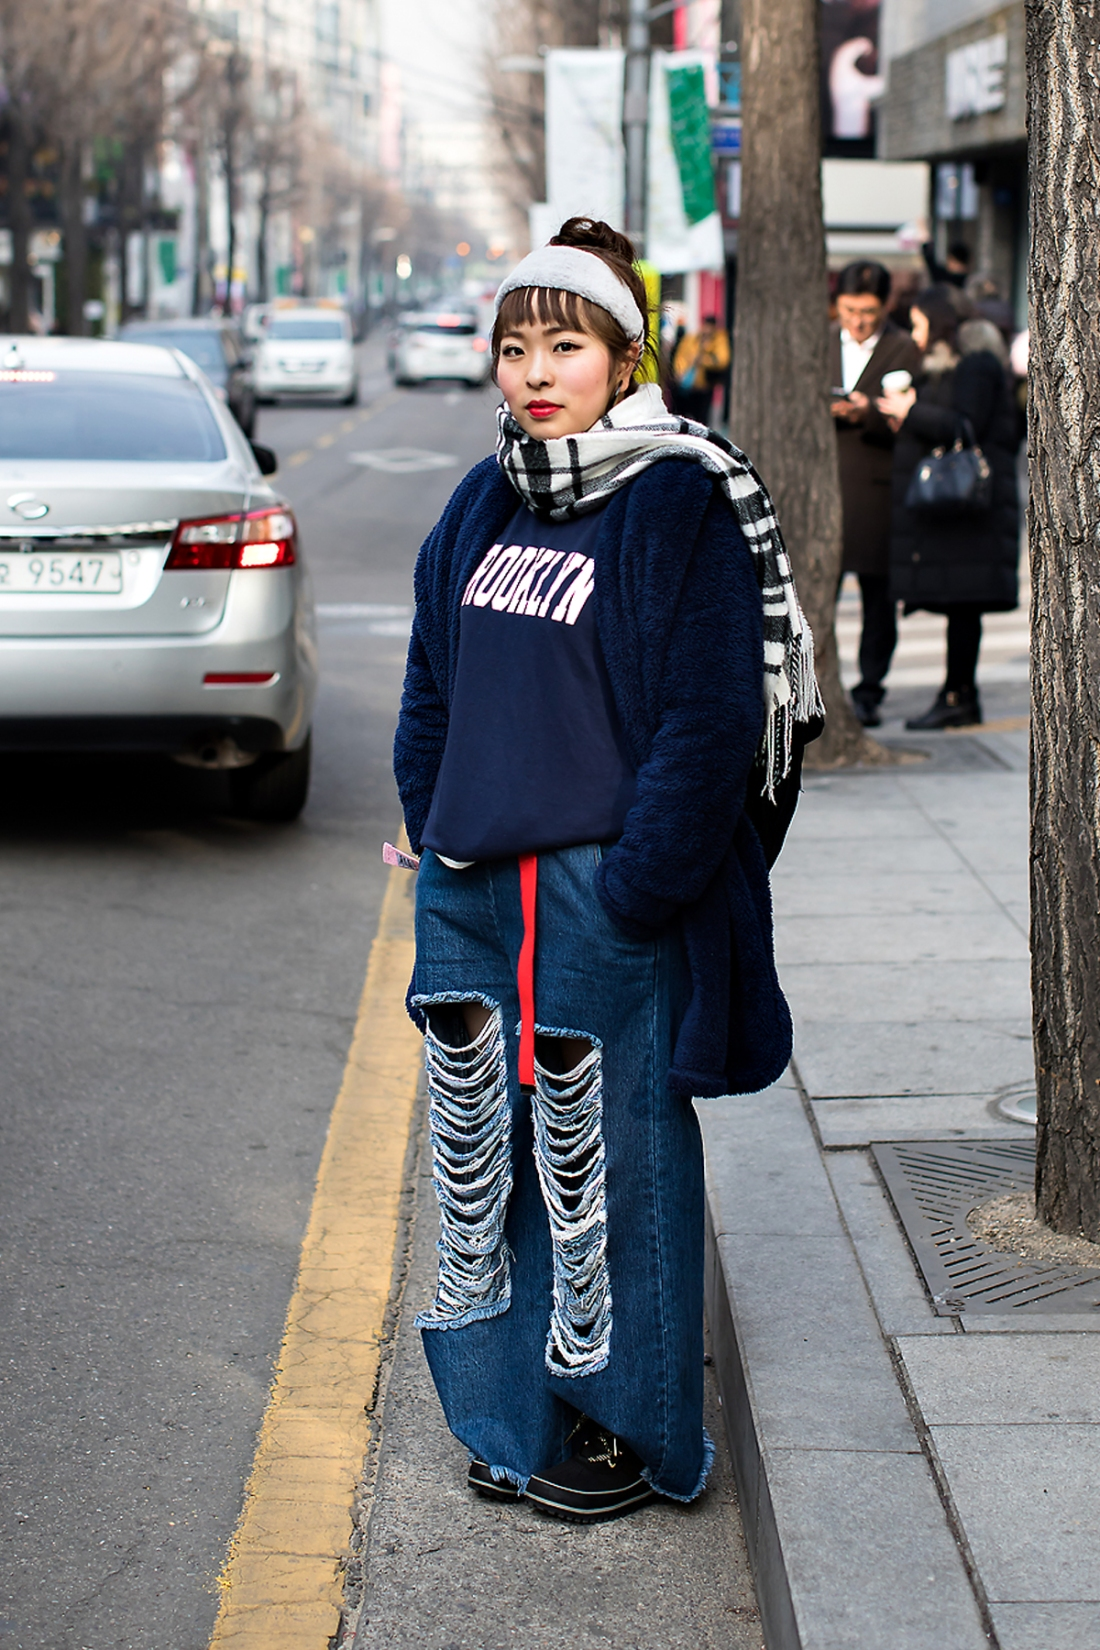 DANDY, Street Fashion 2017 in SEOUL.jpg